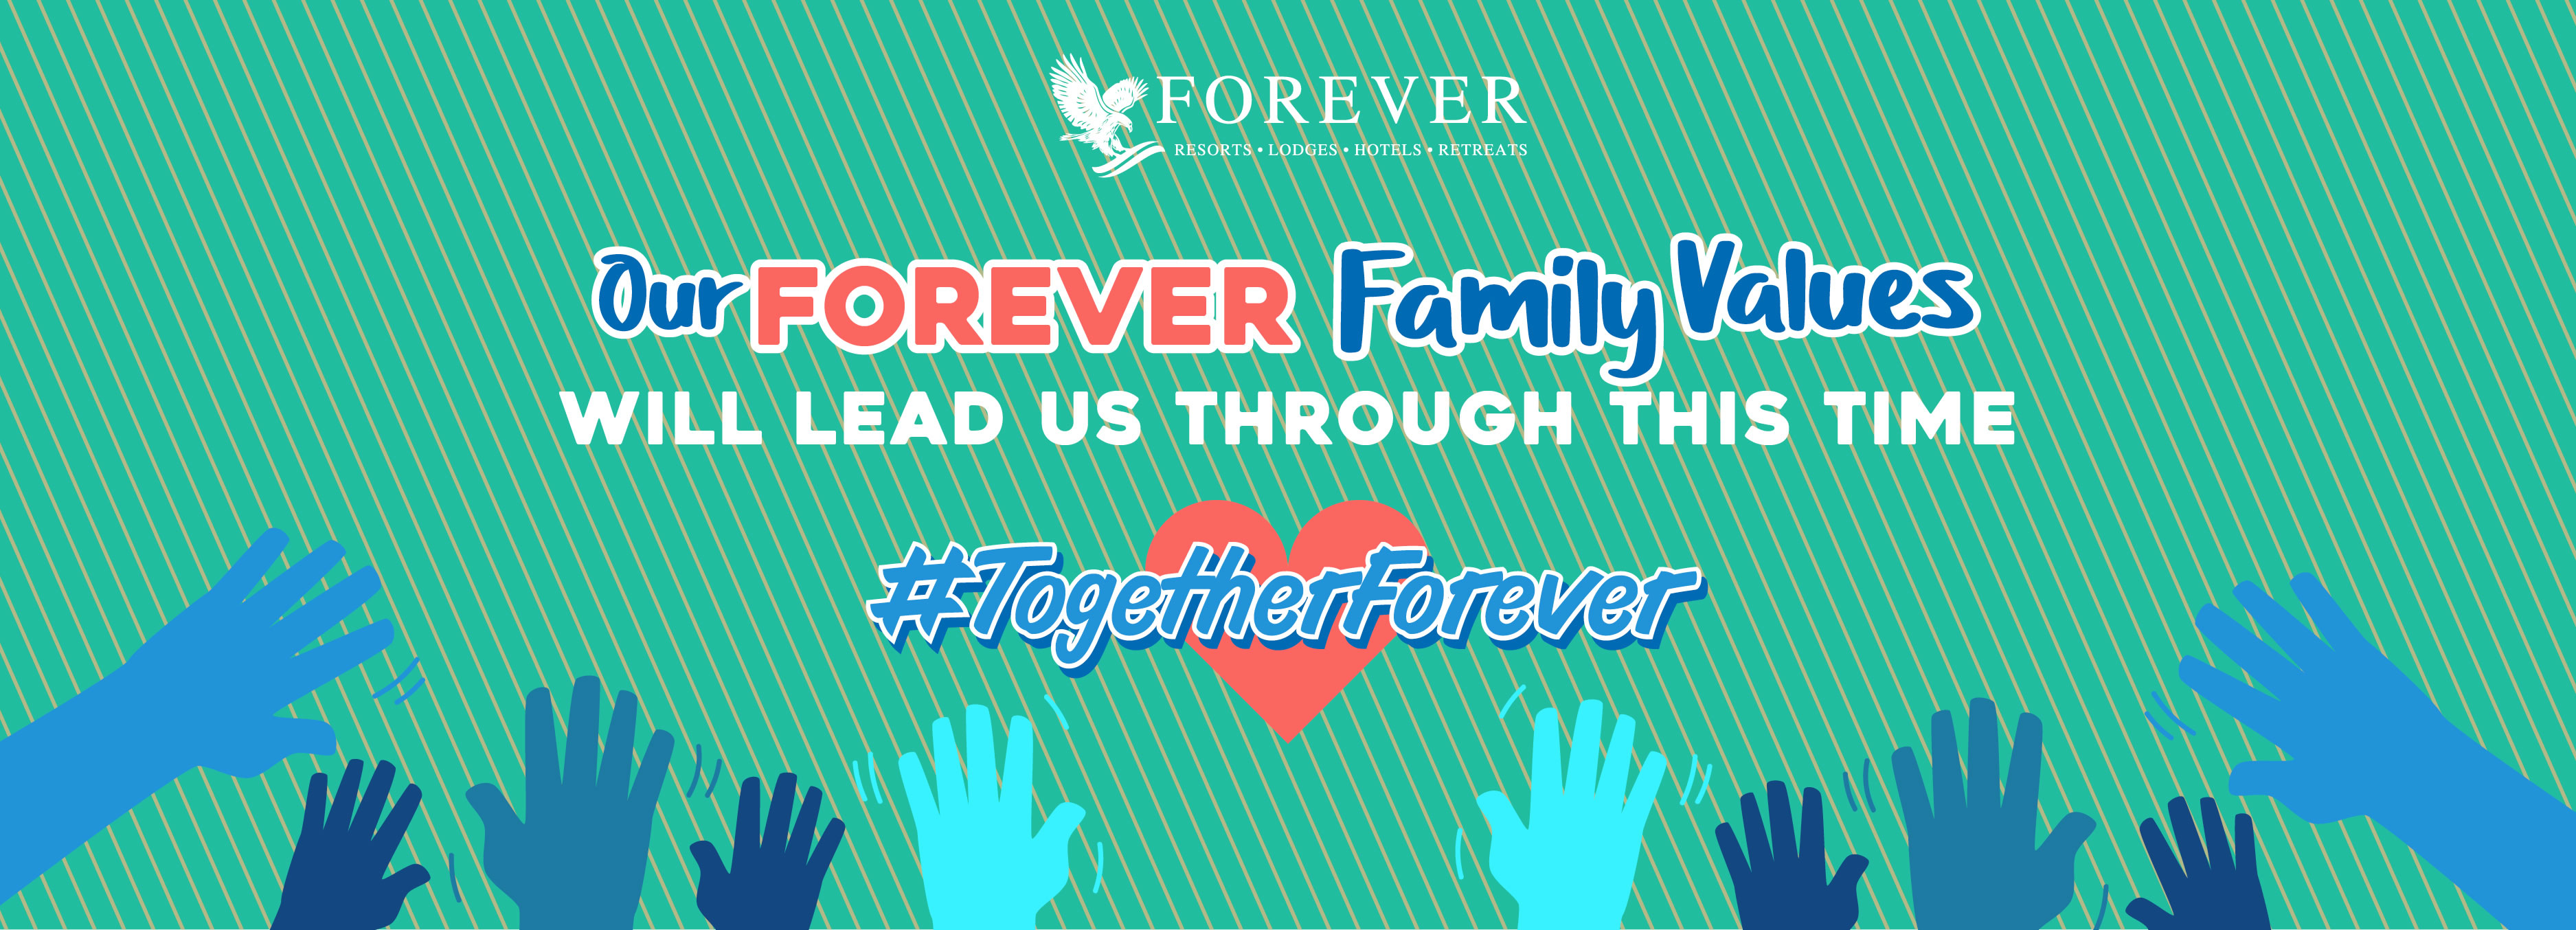 Our FOREVER family values will lead us through this time